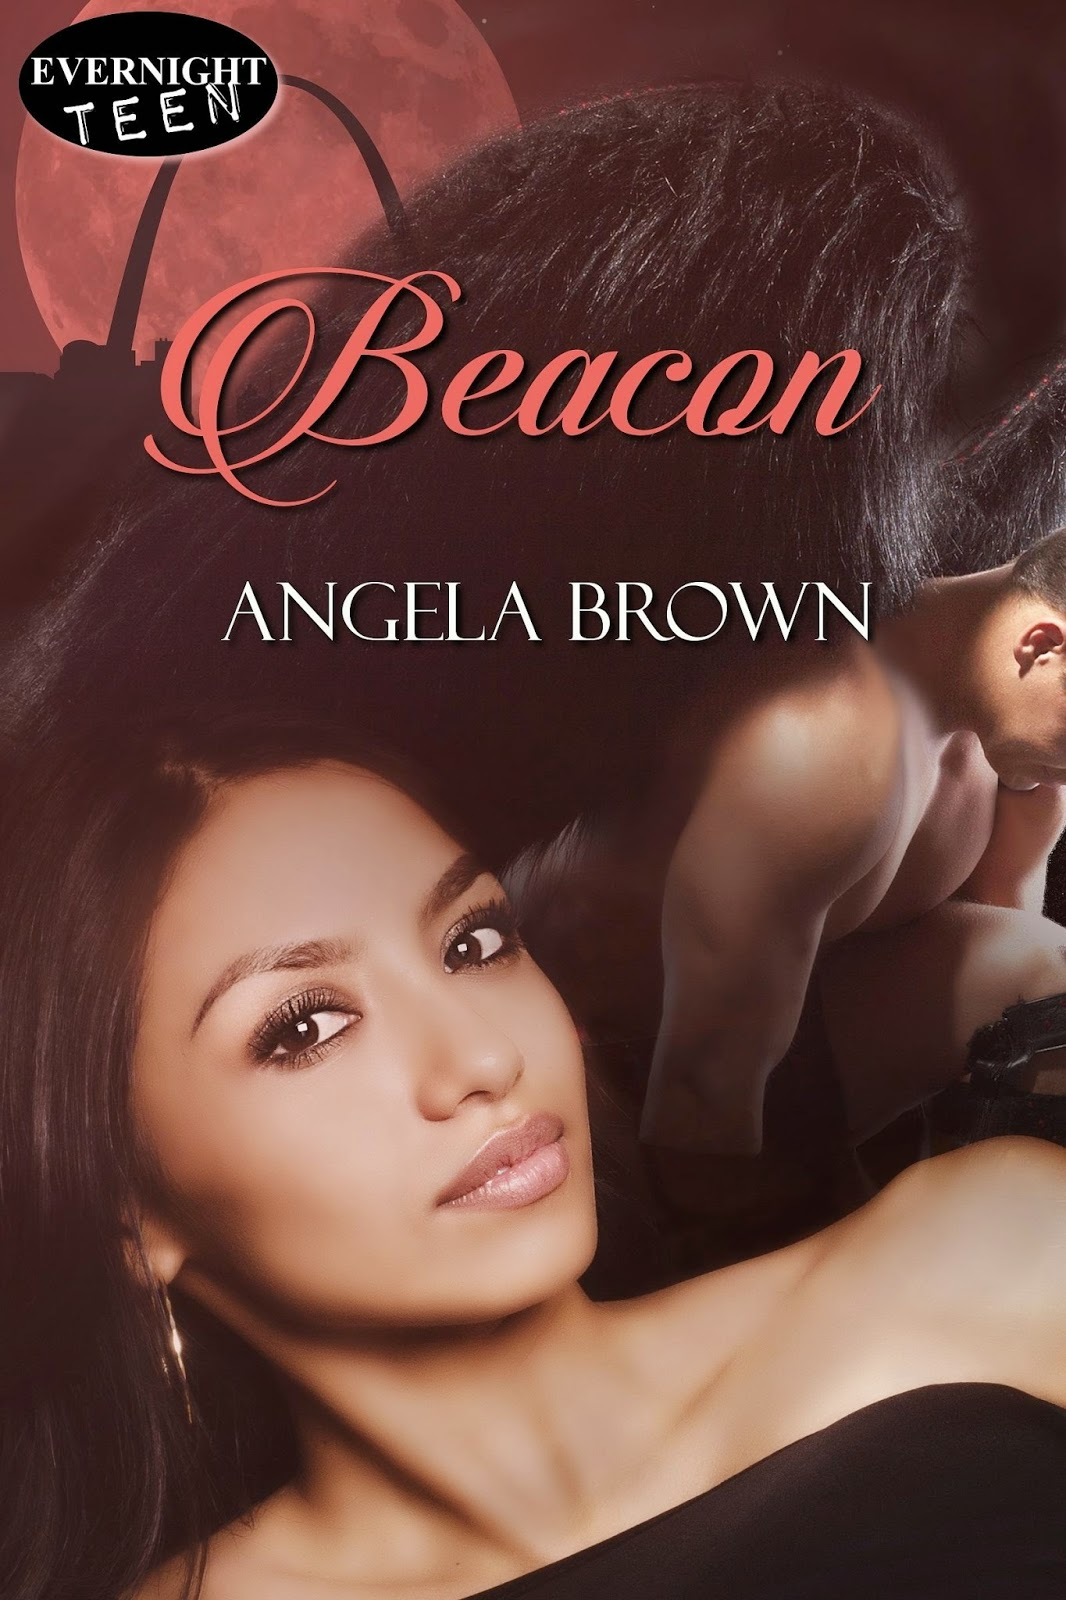 http://www.amazon.com/Beacon-Ripped-Ties-Book-1-ebook/dp/B00PXHHUX0/ref=sr_1_1?ie=UTF8&qid=1420721806&sr=8-1&keywords=beacon+by+angela+brown